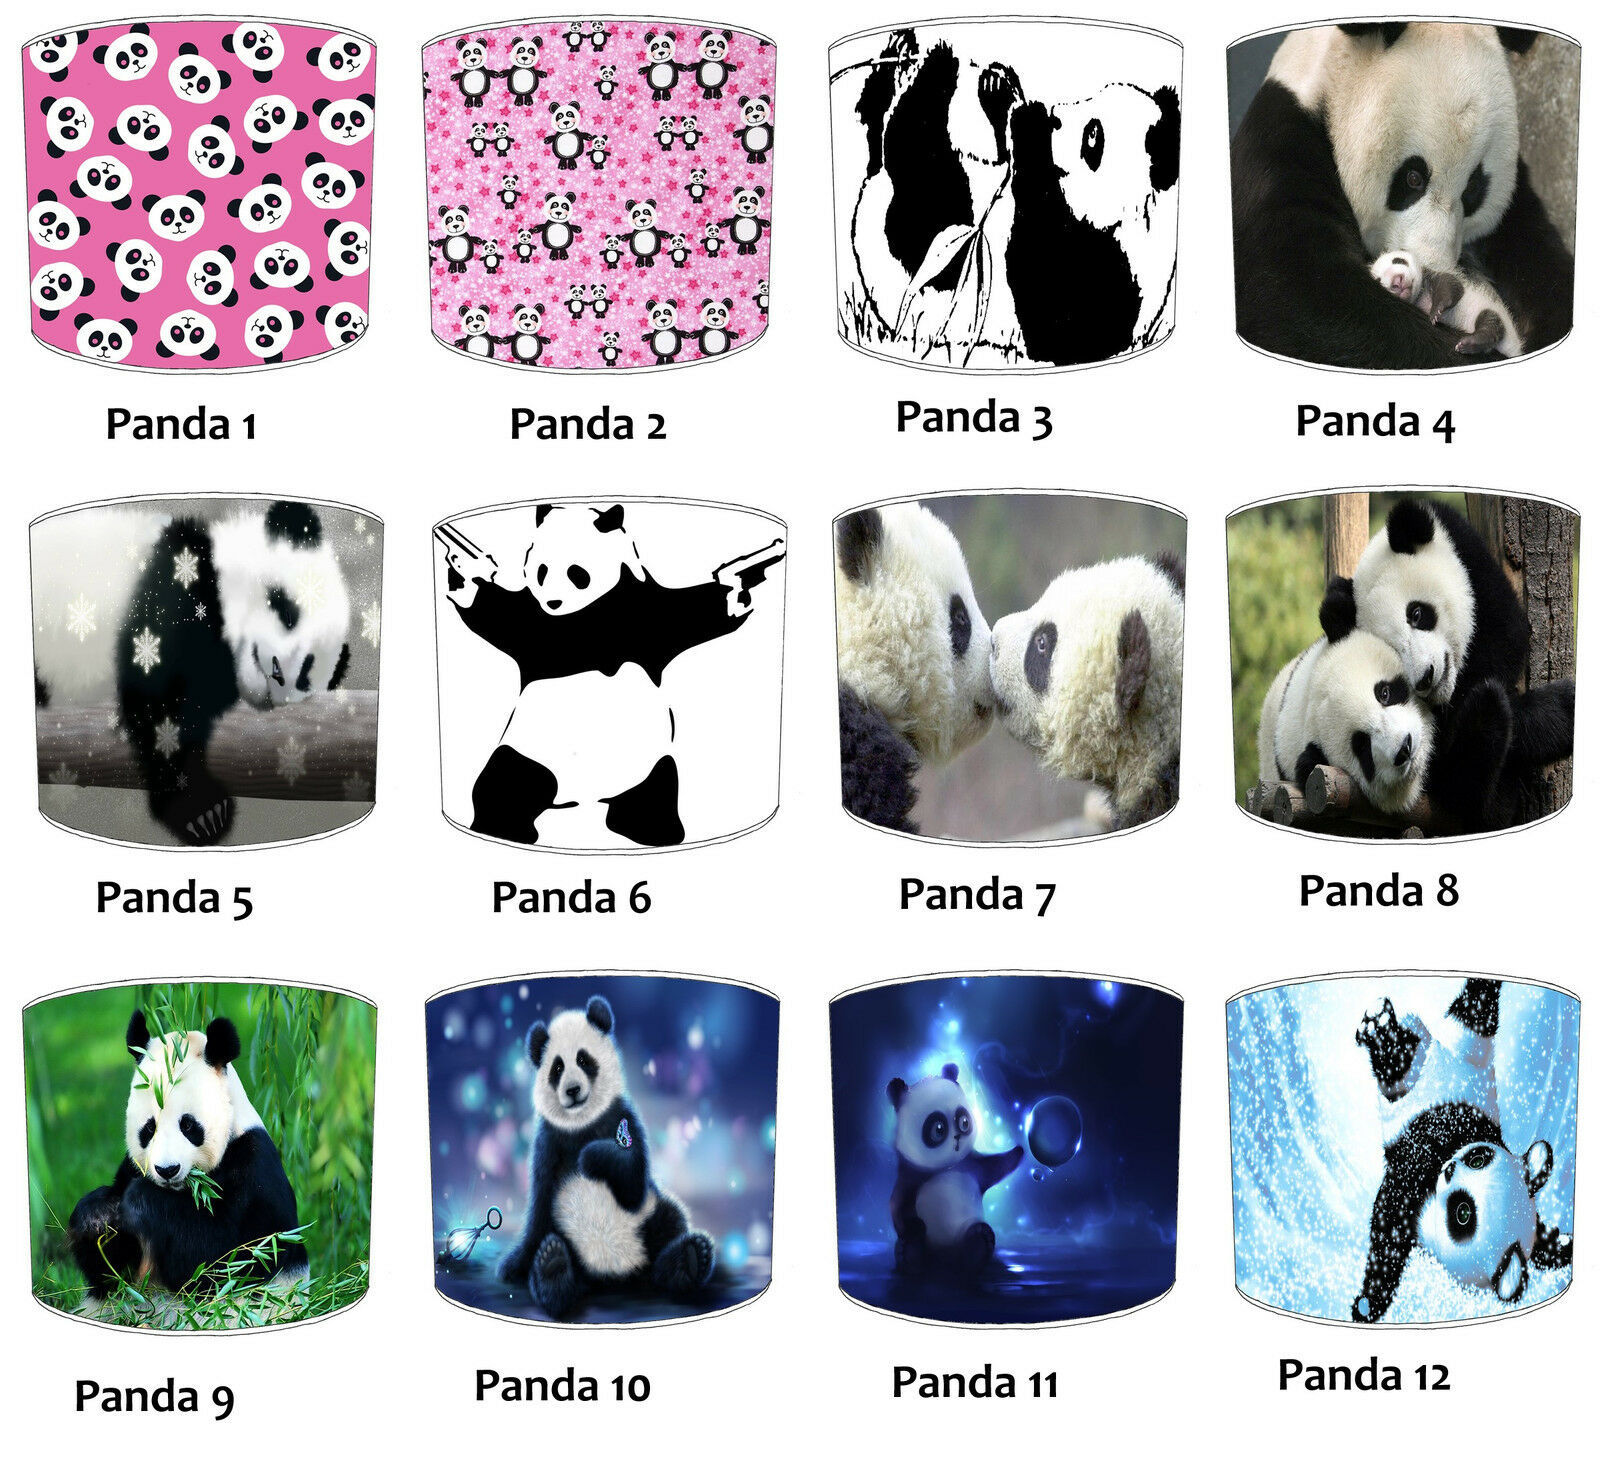 Giant Panda Lampshades Ideal To Match Panda Wall Posters, Giant Panda Wall Decal